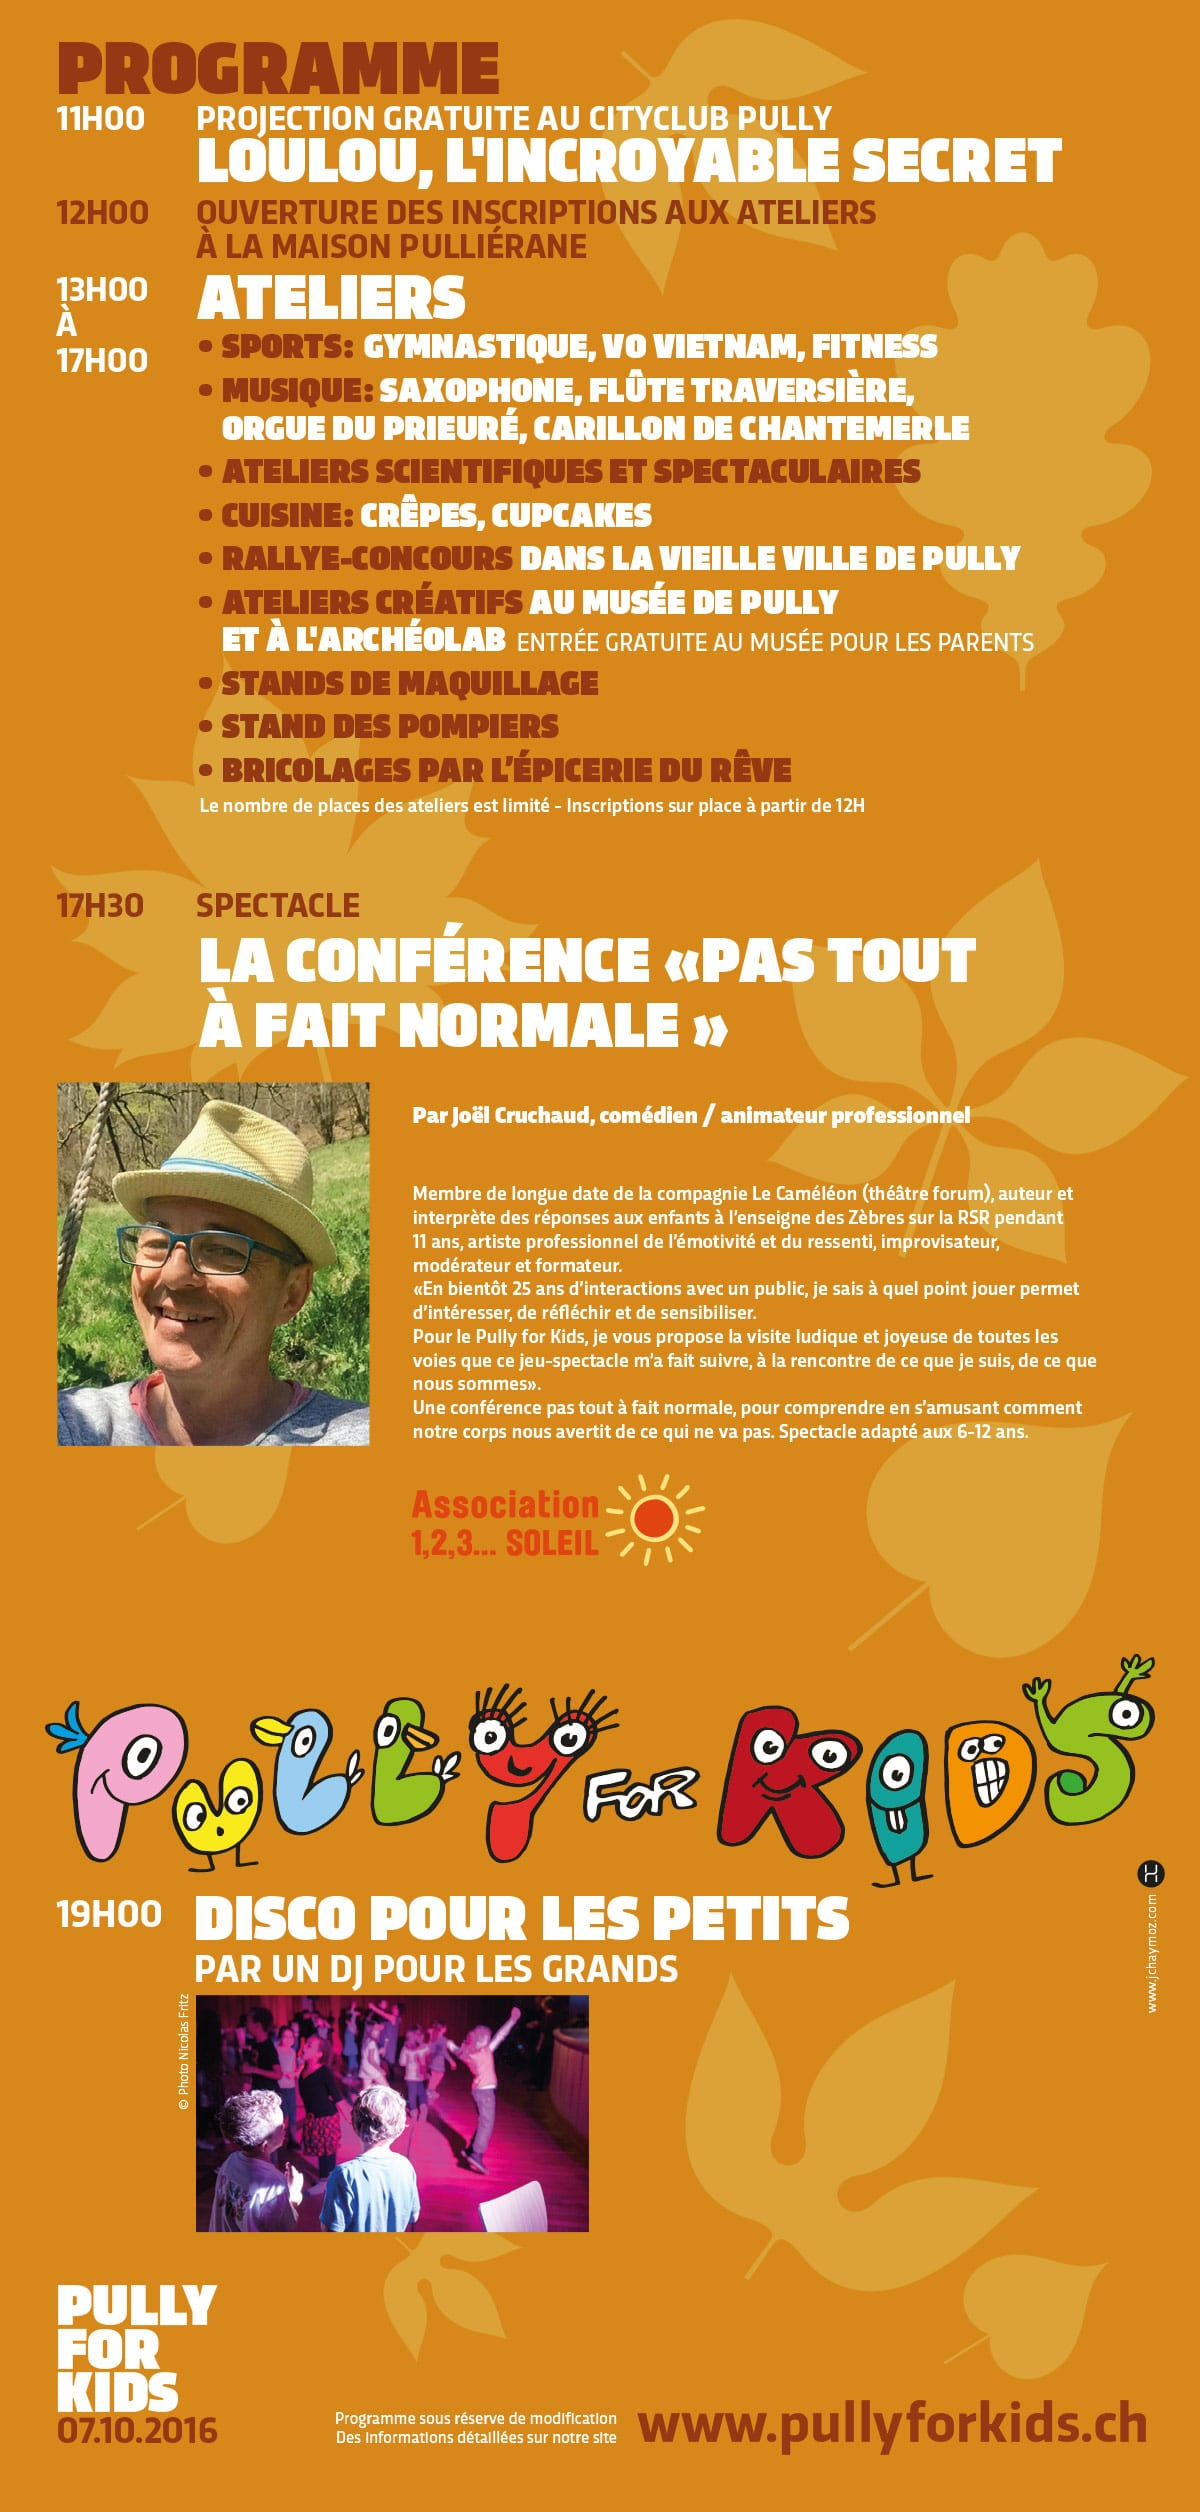 Pully for KId - Festvial pour enfants - Affiche / programme - Haymoz design